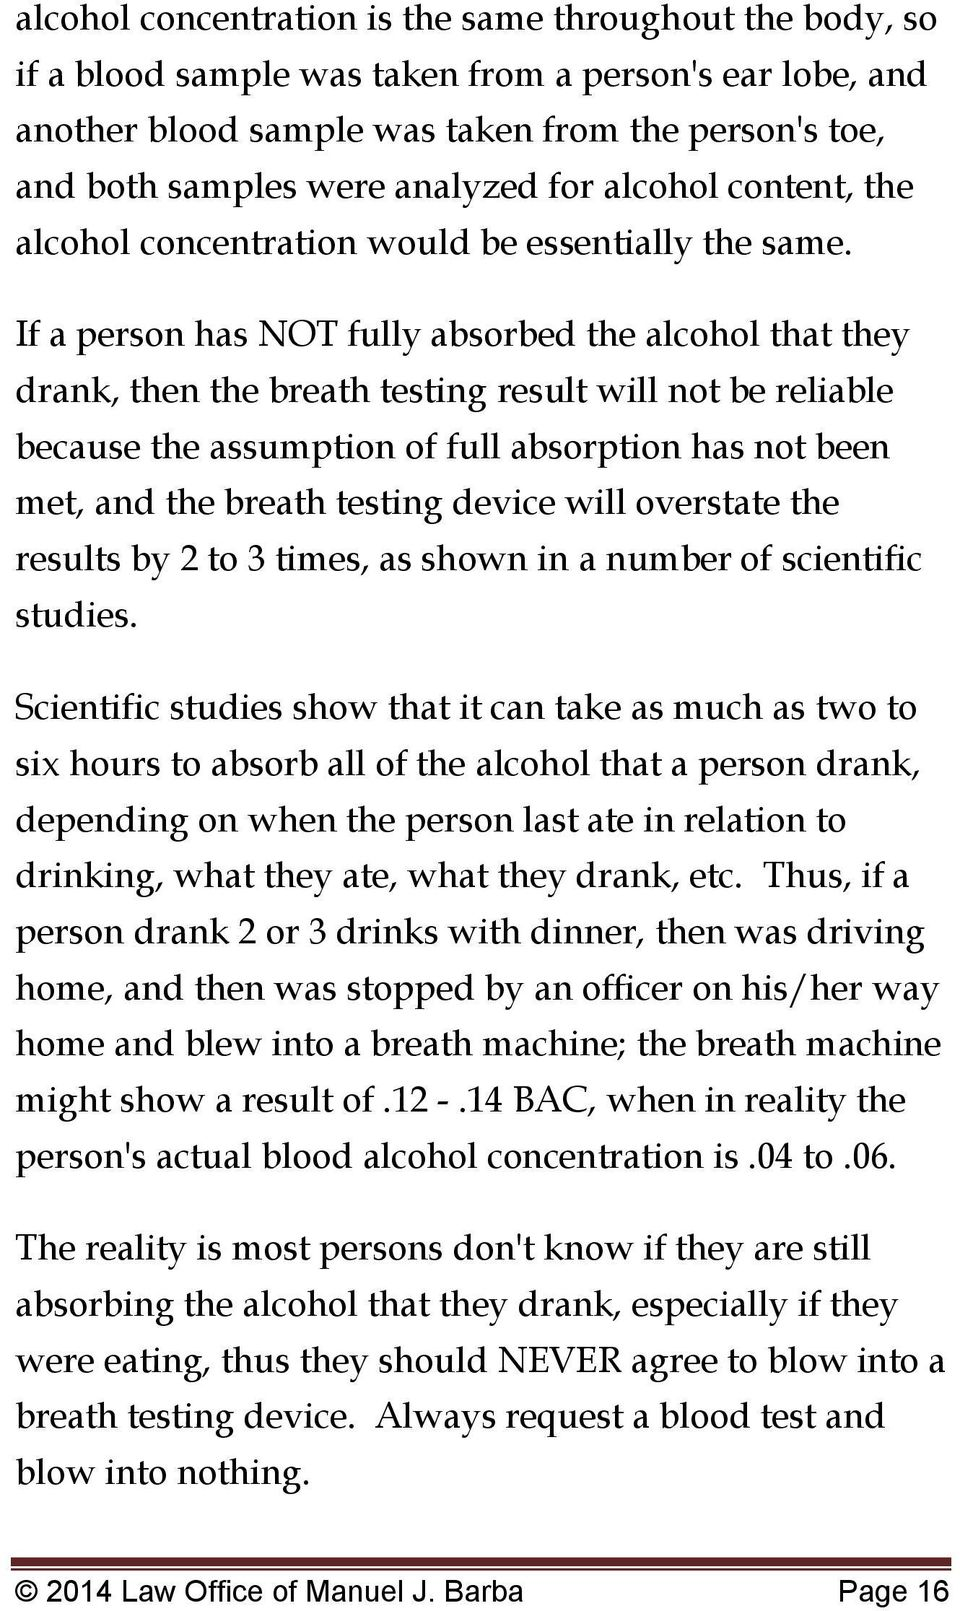 If a person has NOT fully absorbed the alcohol that they drank, then the breath testing result will not be reliable because the assumption of full absorption has not been met, and the breath testing